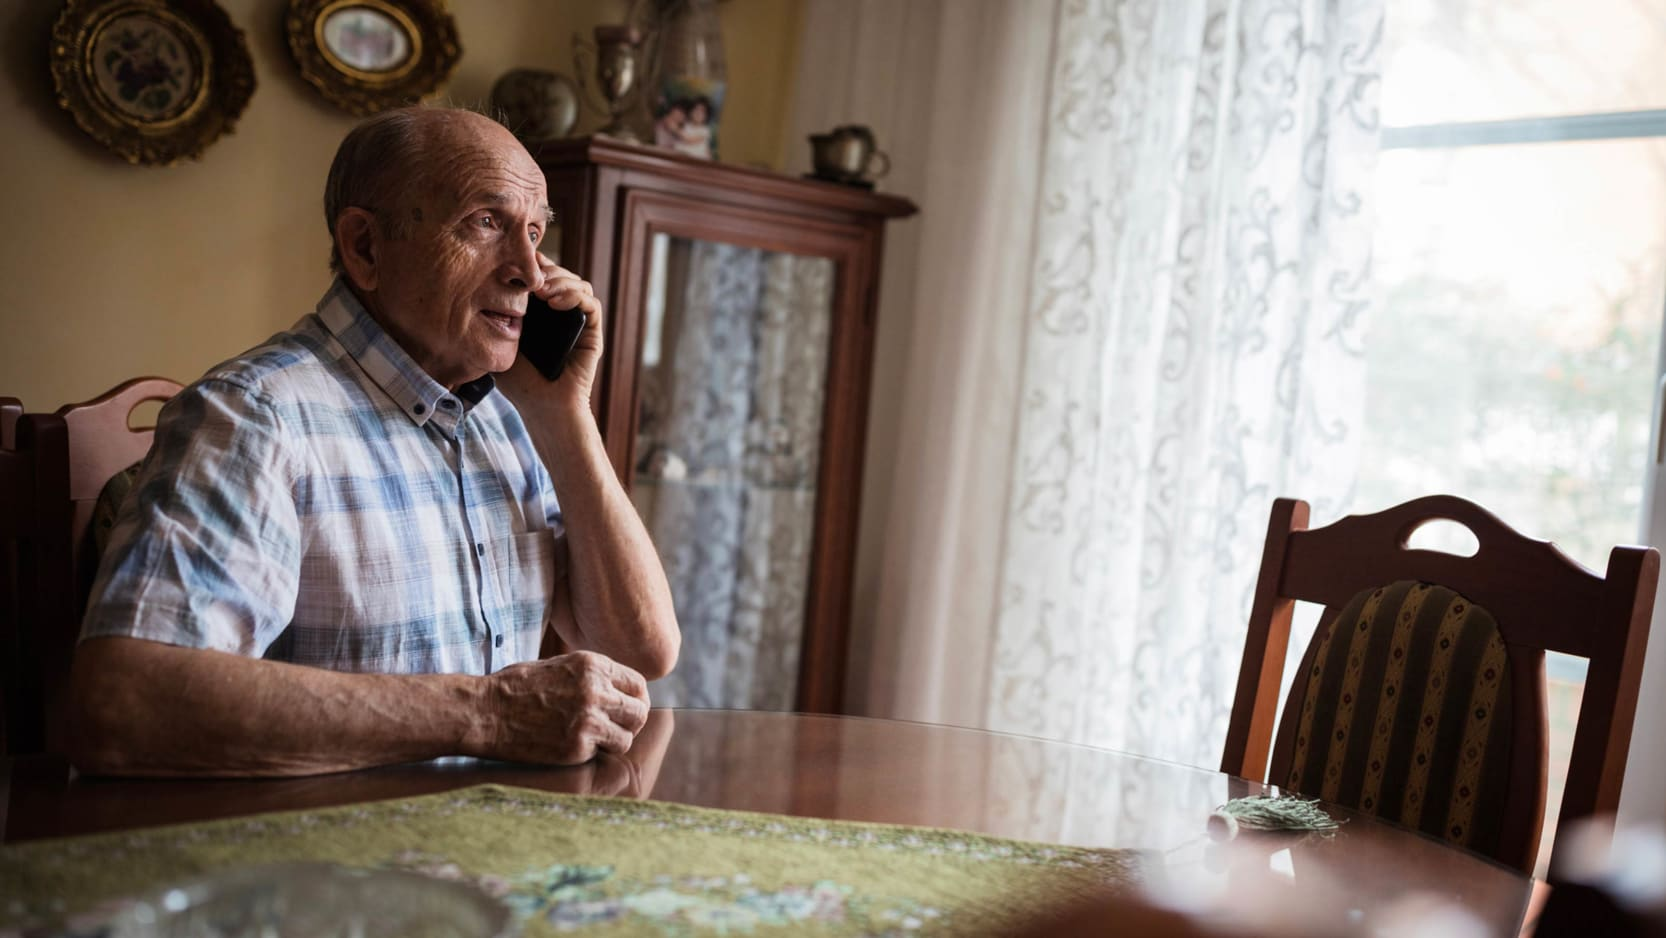 A senior man sitting at his dining room table speaking on his cellphone.